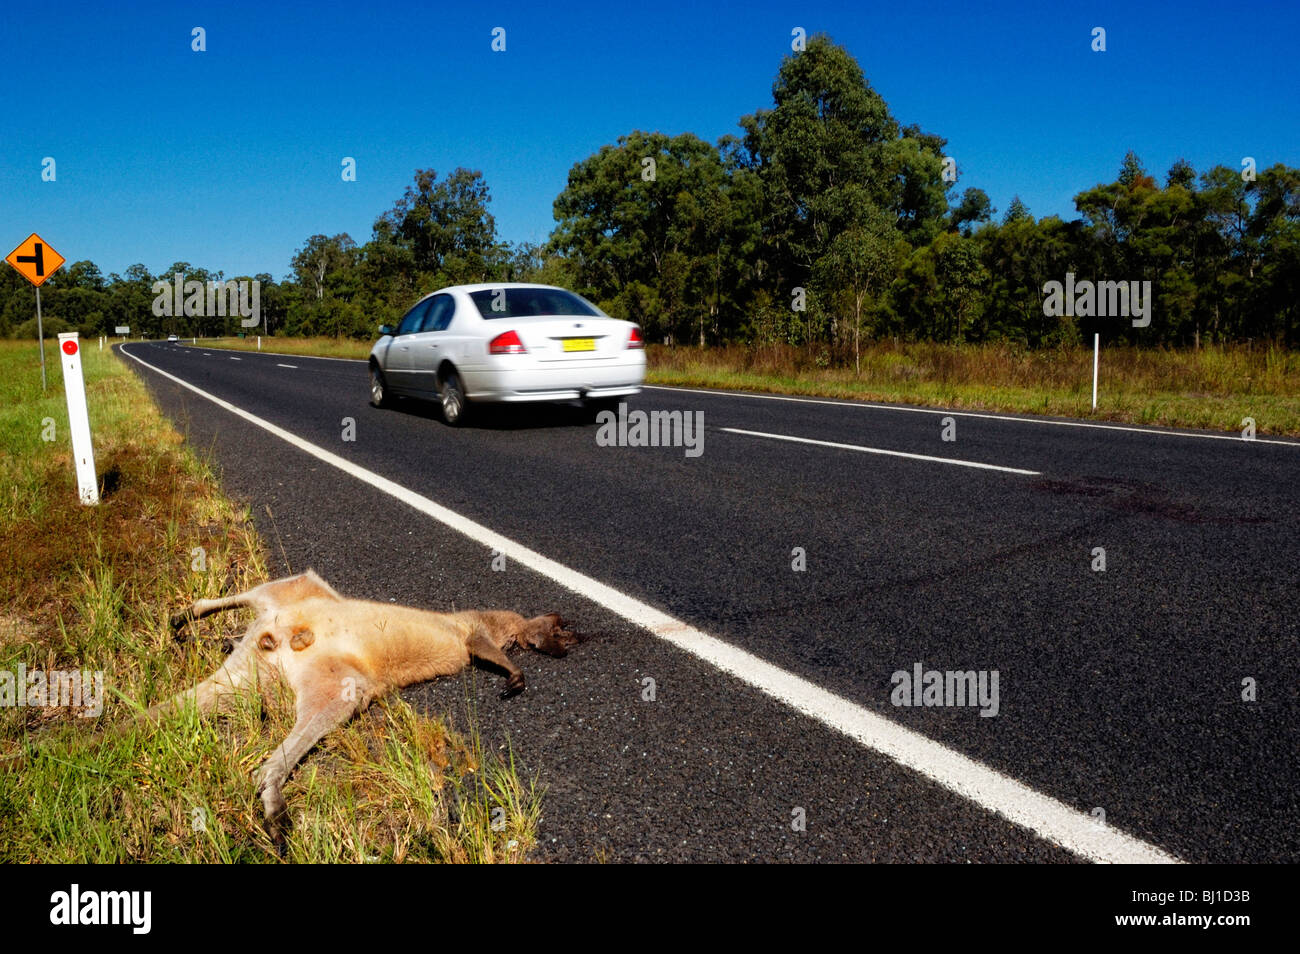 Photo shows a dead kangaroo, killed by car or truck, New South Wales, Australia. - Stock Image